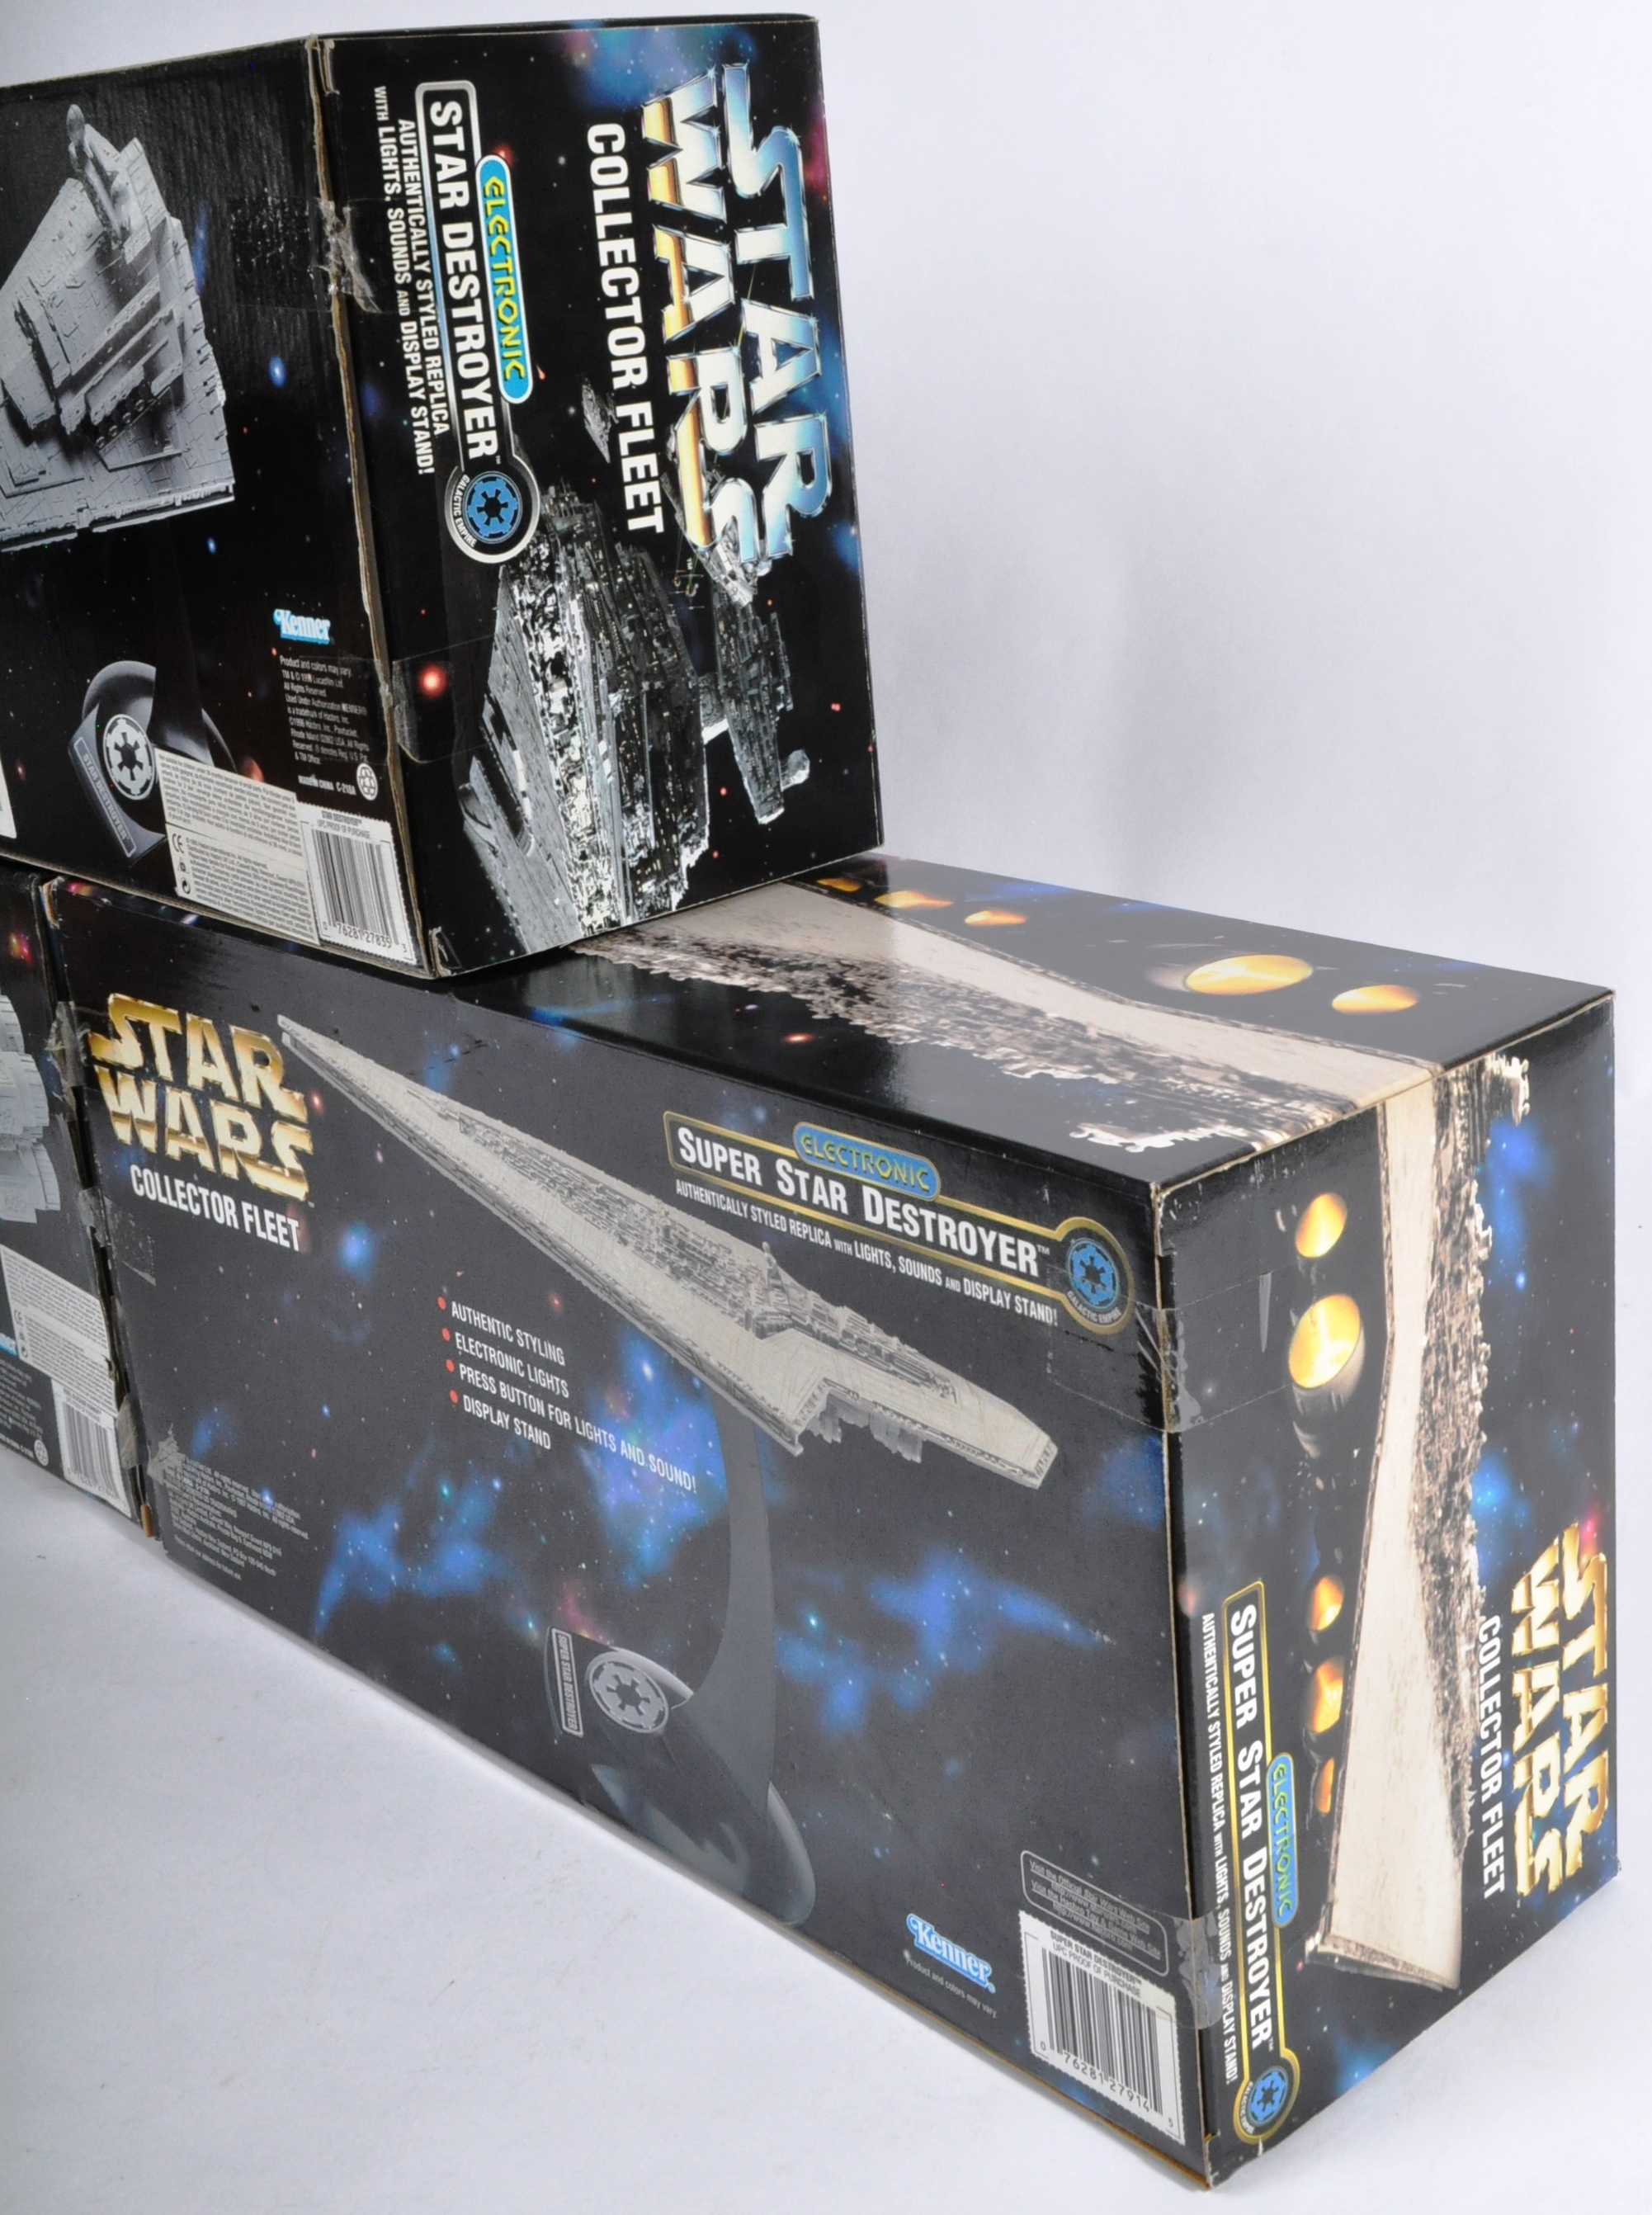 STAR WARS - COLLECTION OF KENNER ' COLLECTOR FLEET ' PLAYSETS - Image 4 of 5